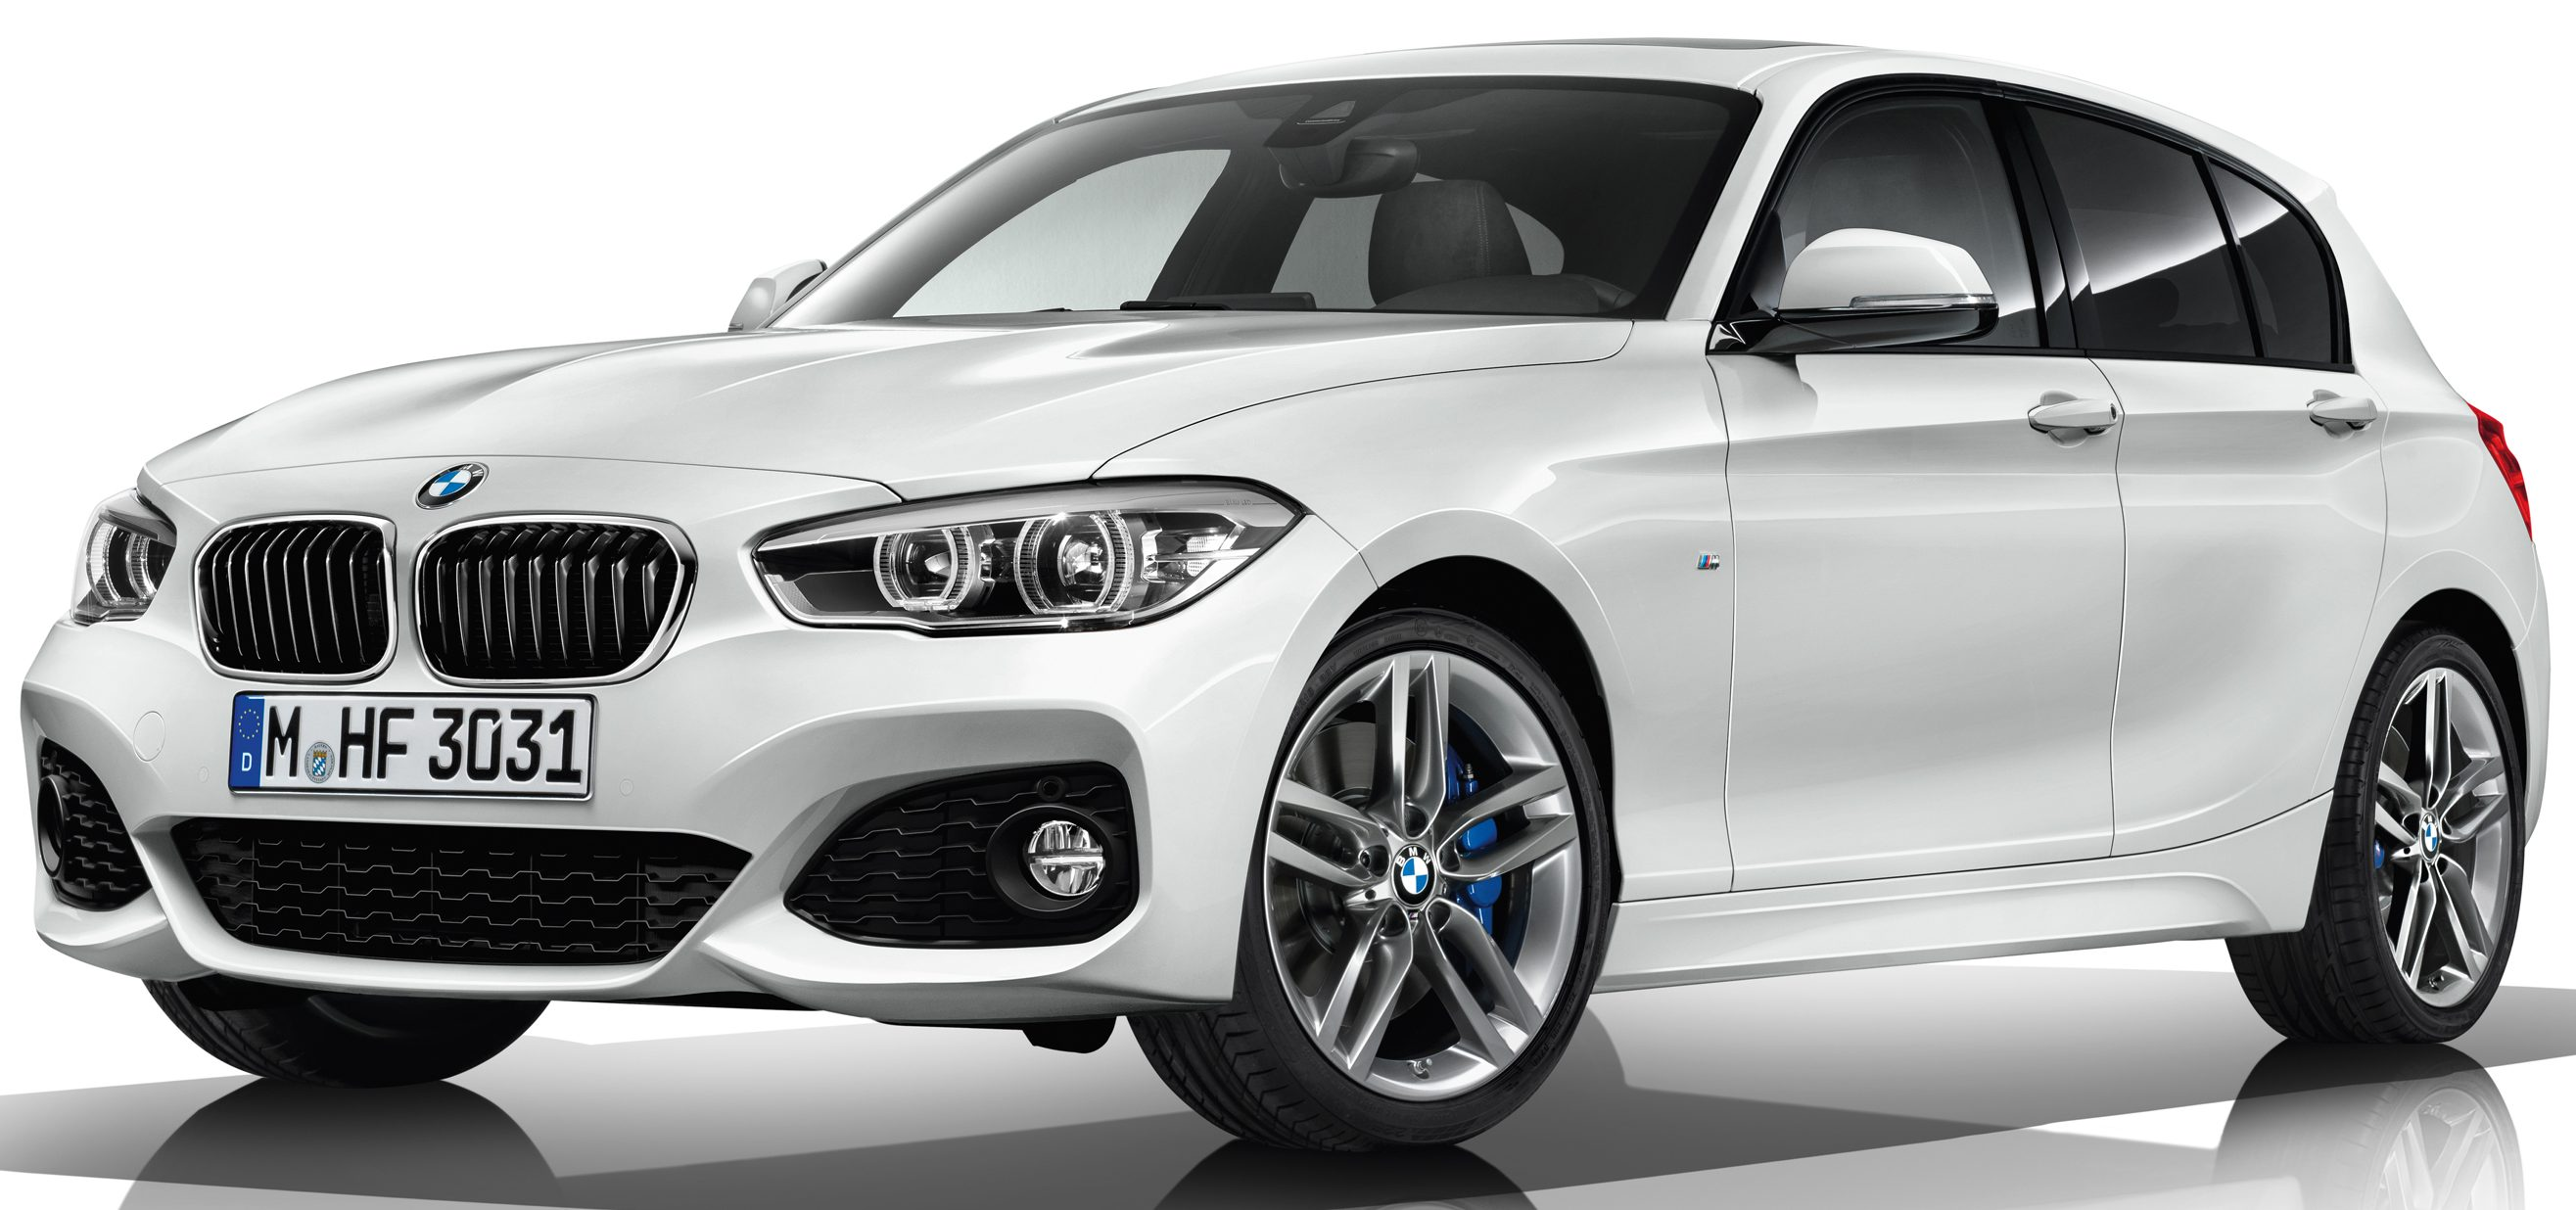 BMW 1 Series and 2 Series get more powerful engines for 2017 MY - 230i ...